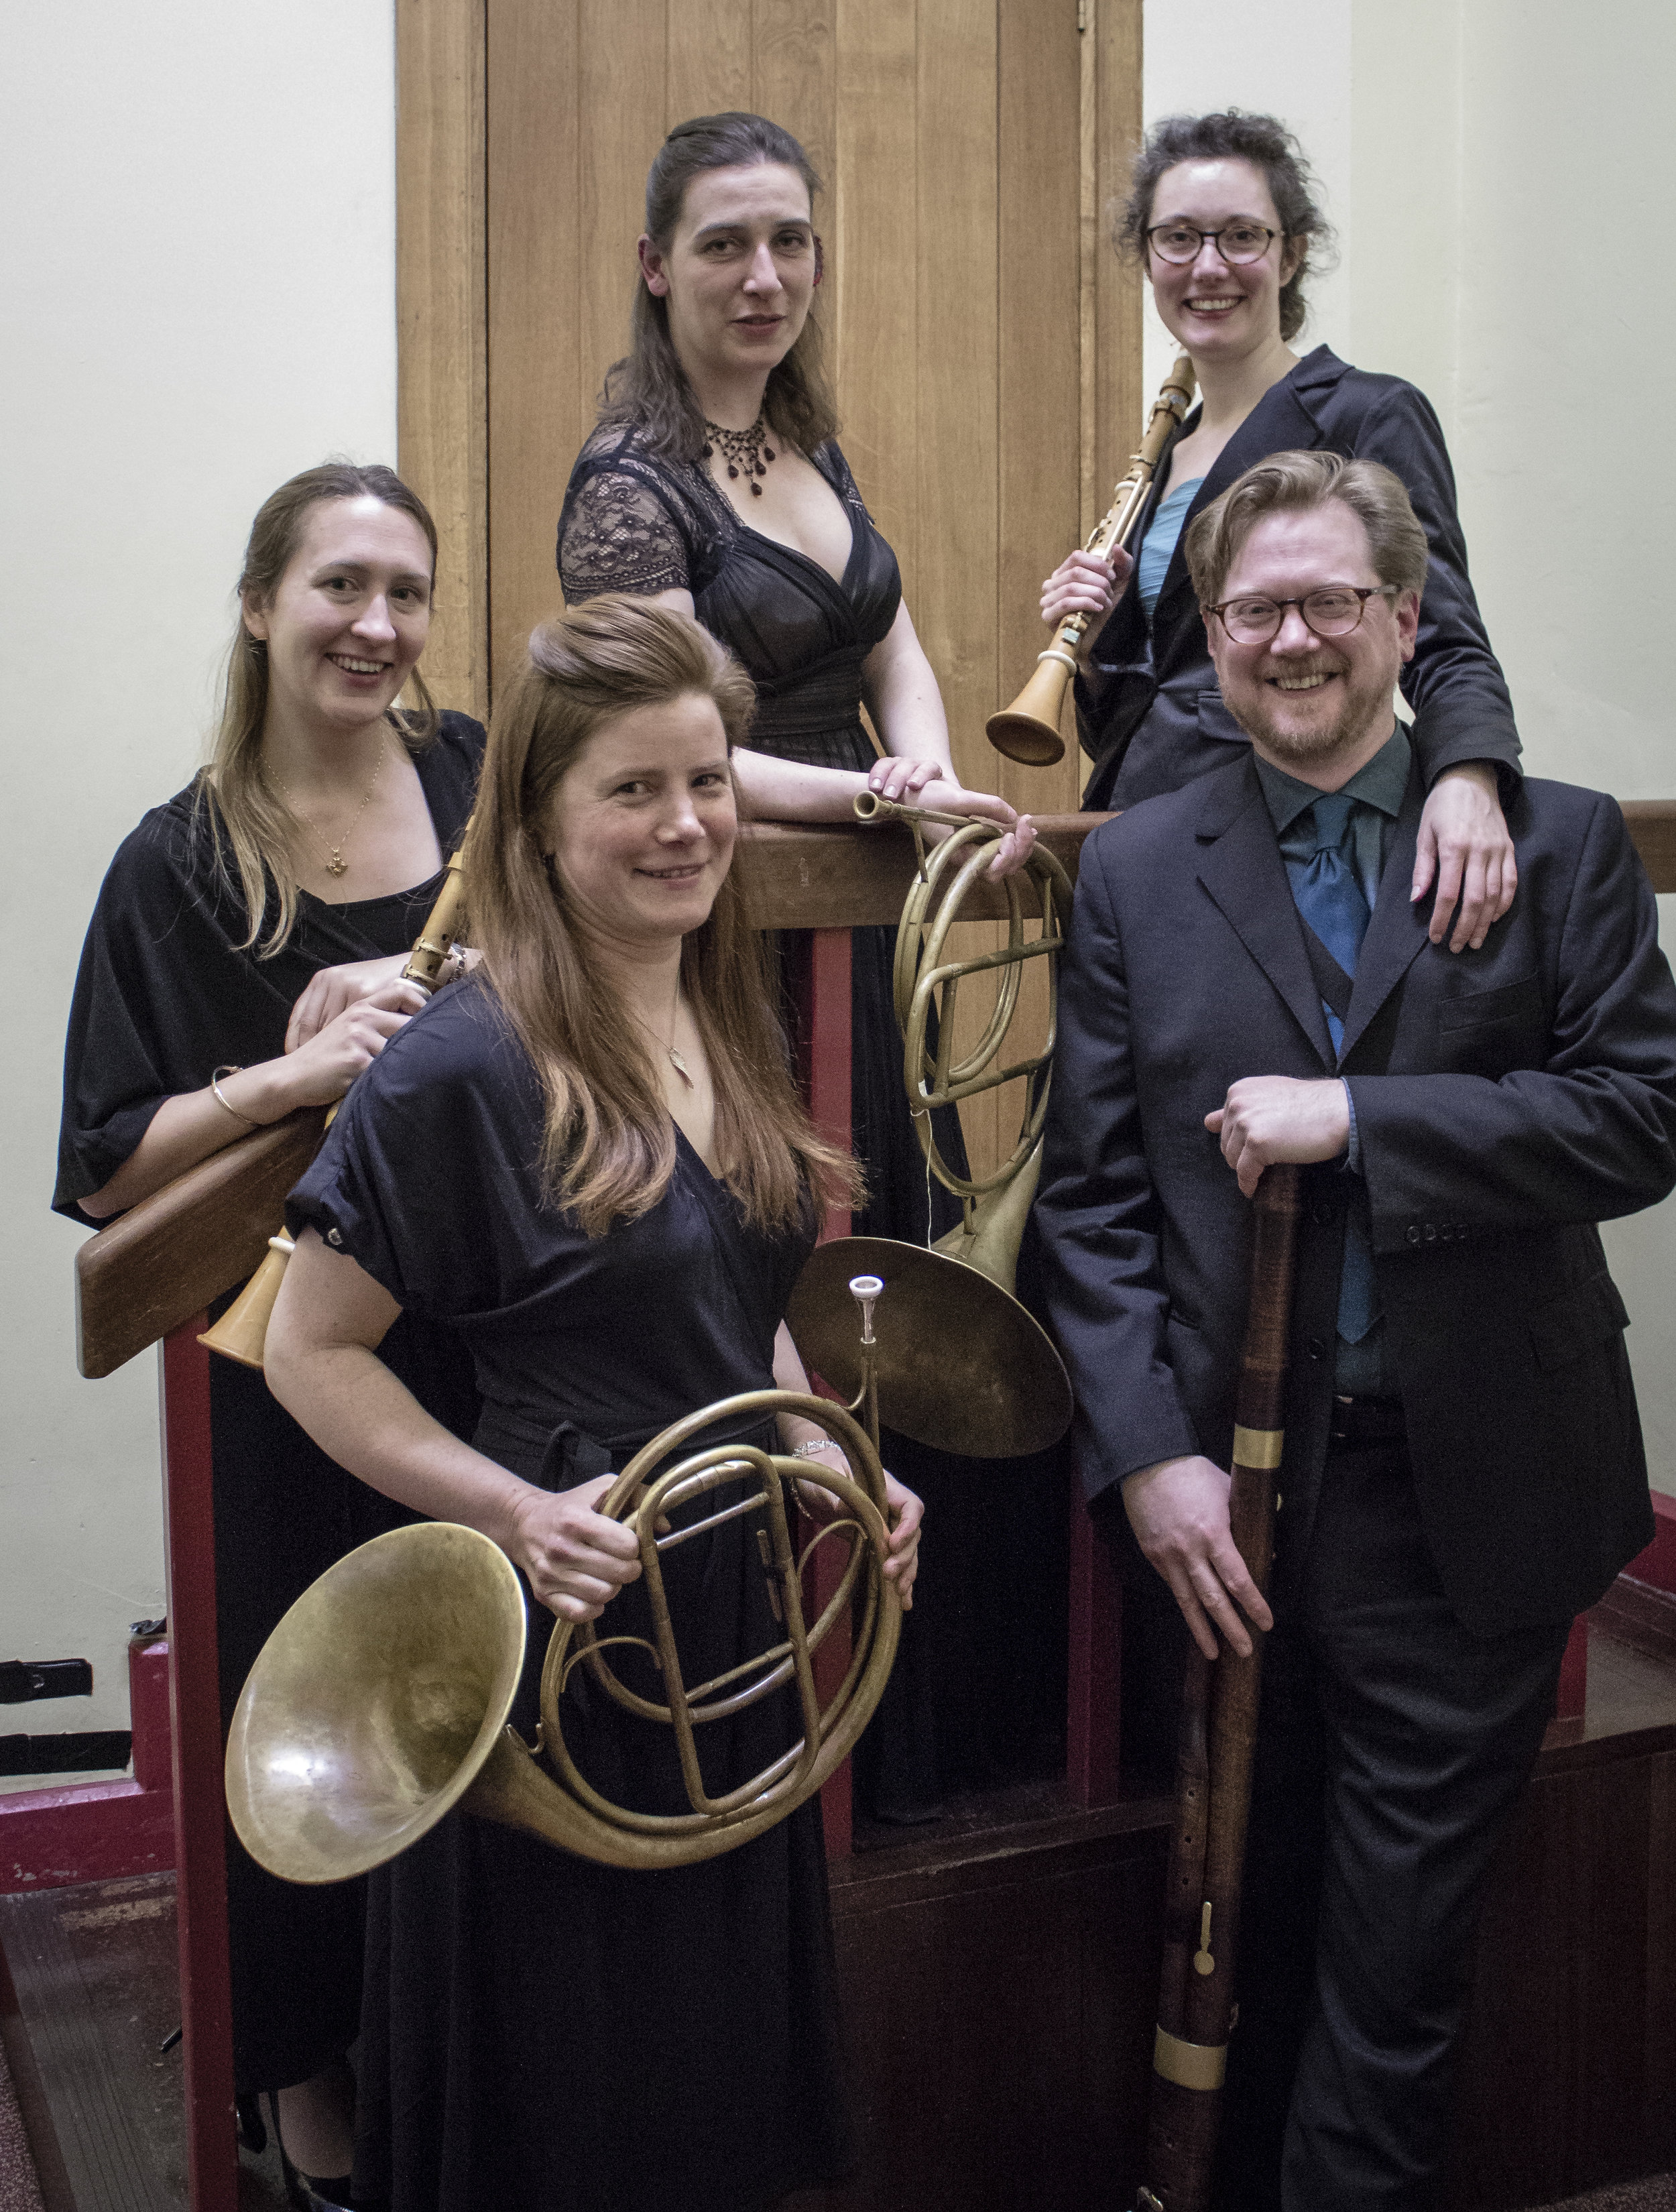 All smiles after our concert 'That Idyllic Combination: The Time-Traveller's Guide to the early clarinet, horn and bassoon' at St Paul's Hall, Huddersfield, April 2016